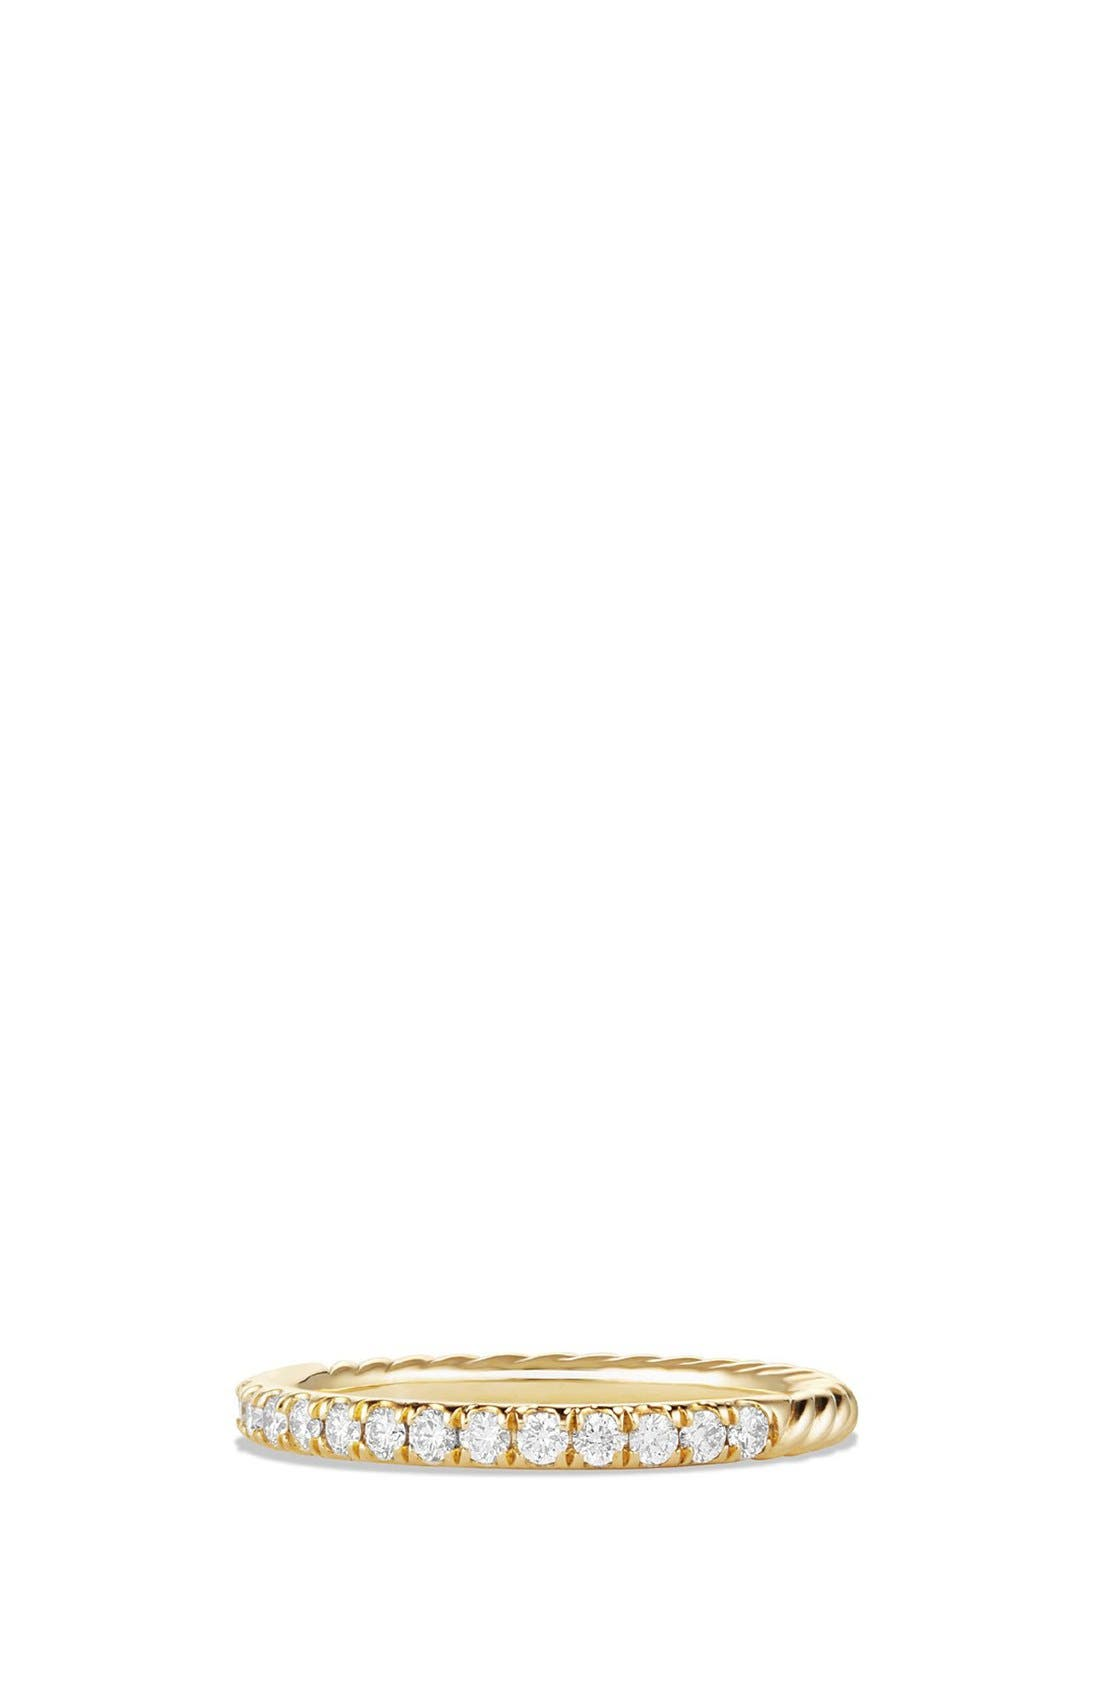 'Cable' Ring with Diamonds in 18K Gold,                         Main,                         color, GOLD